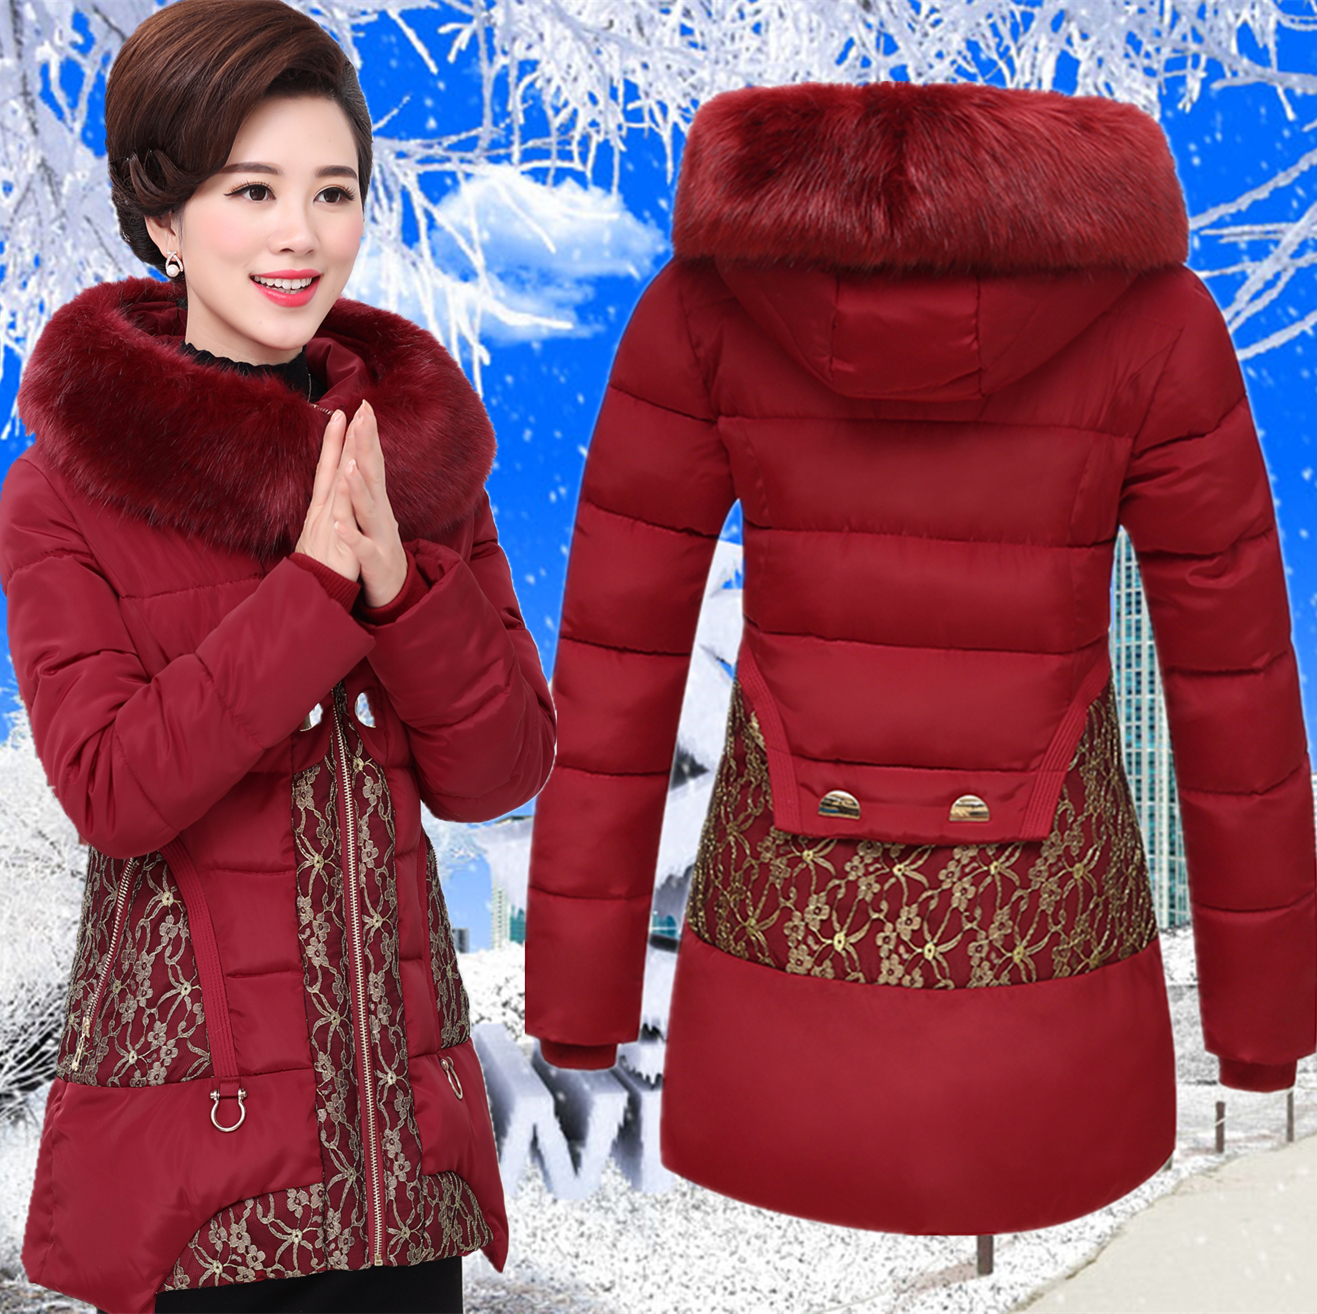 2017 middle-aged and elderly women's winter cotton mother loaded thick down jacket cotton wool coat large size coat 2017 60 year old 70 grandmother jacket in the elderly mothers installed women s winter 80 elderly lady down jacket